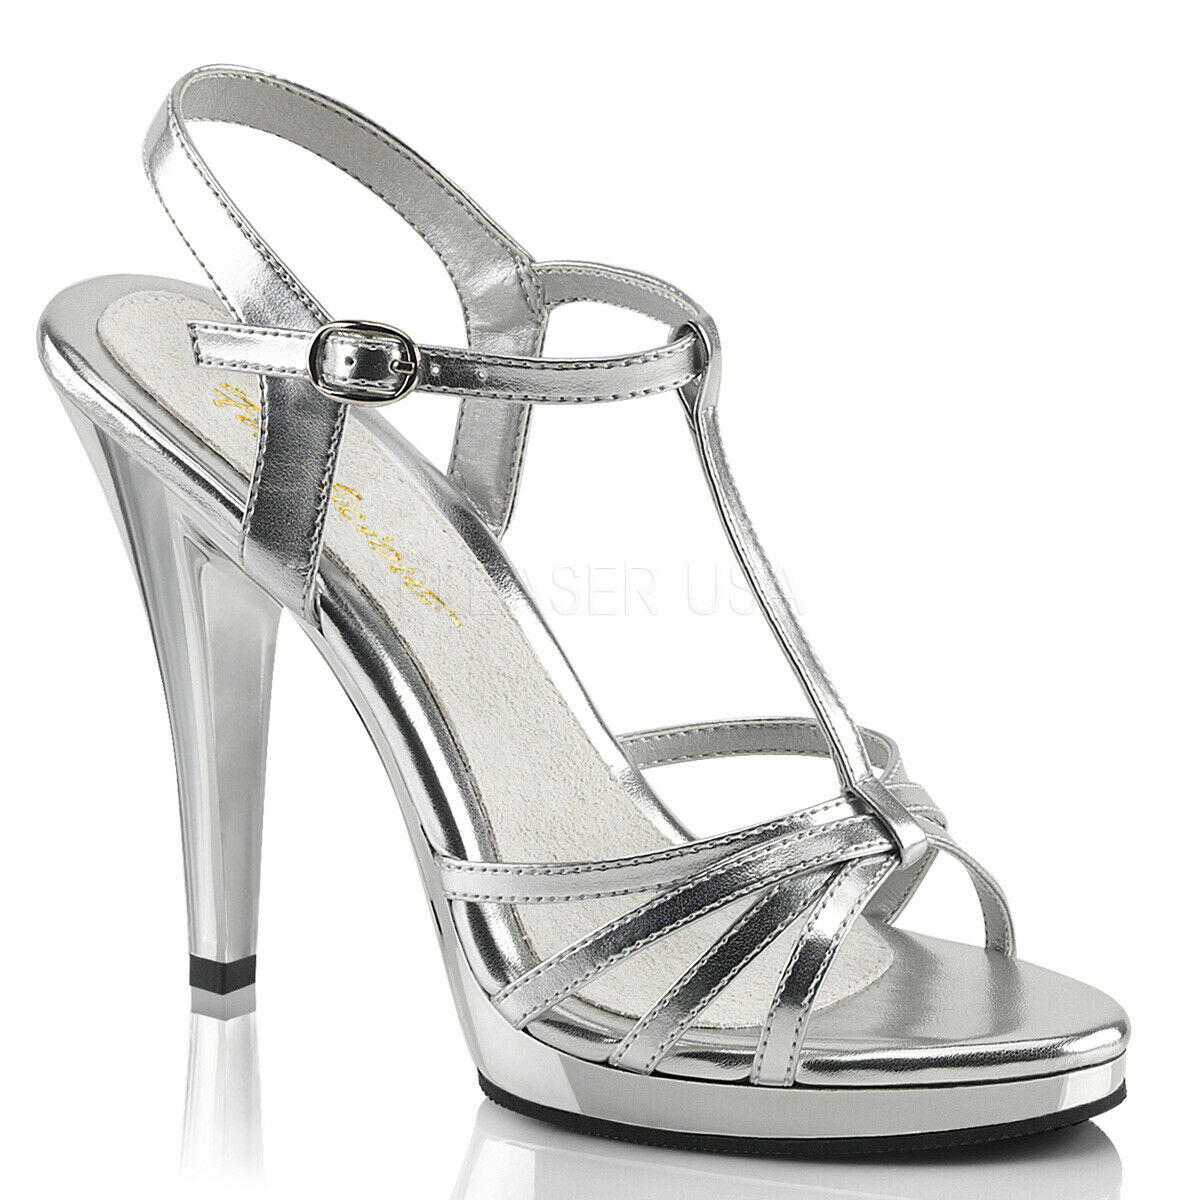 Fabulicious By Pleaser Flair-420 Silber Metallic T-Strap Strappy Sandal schuhe